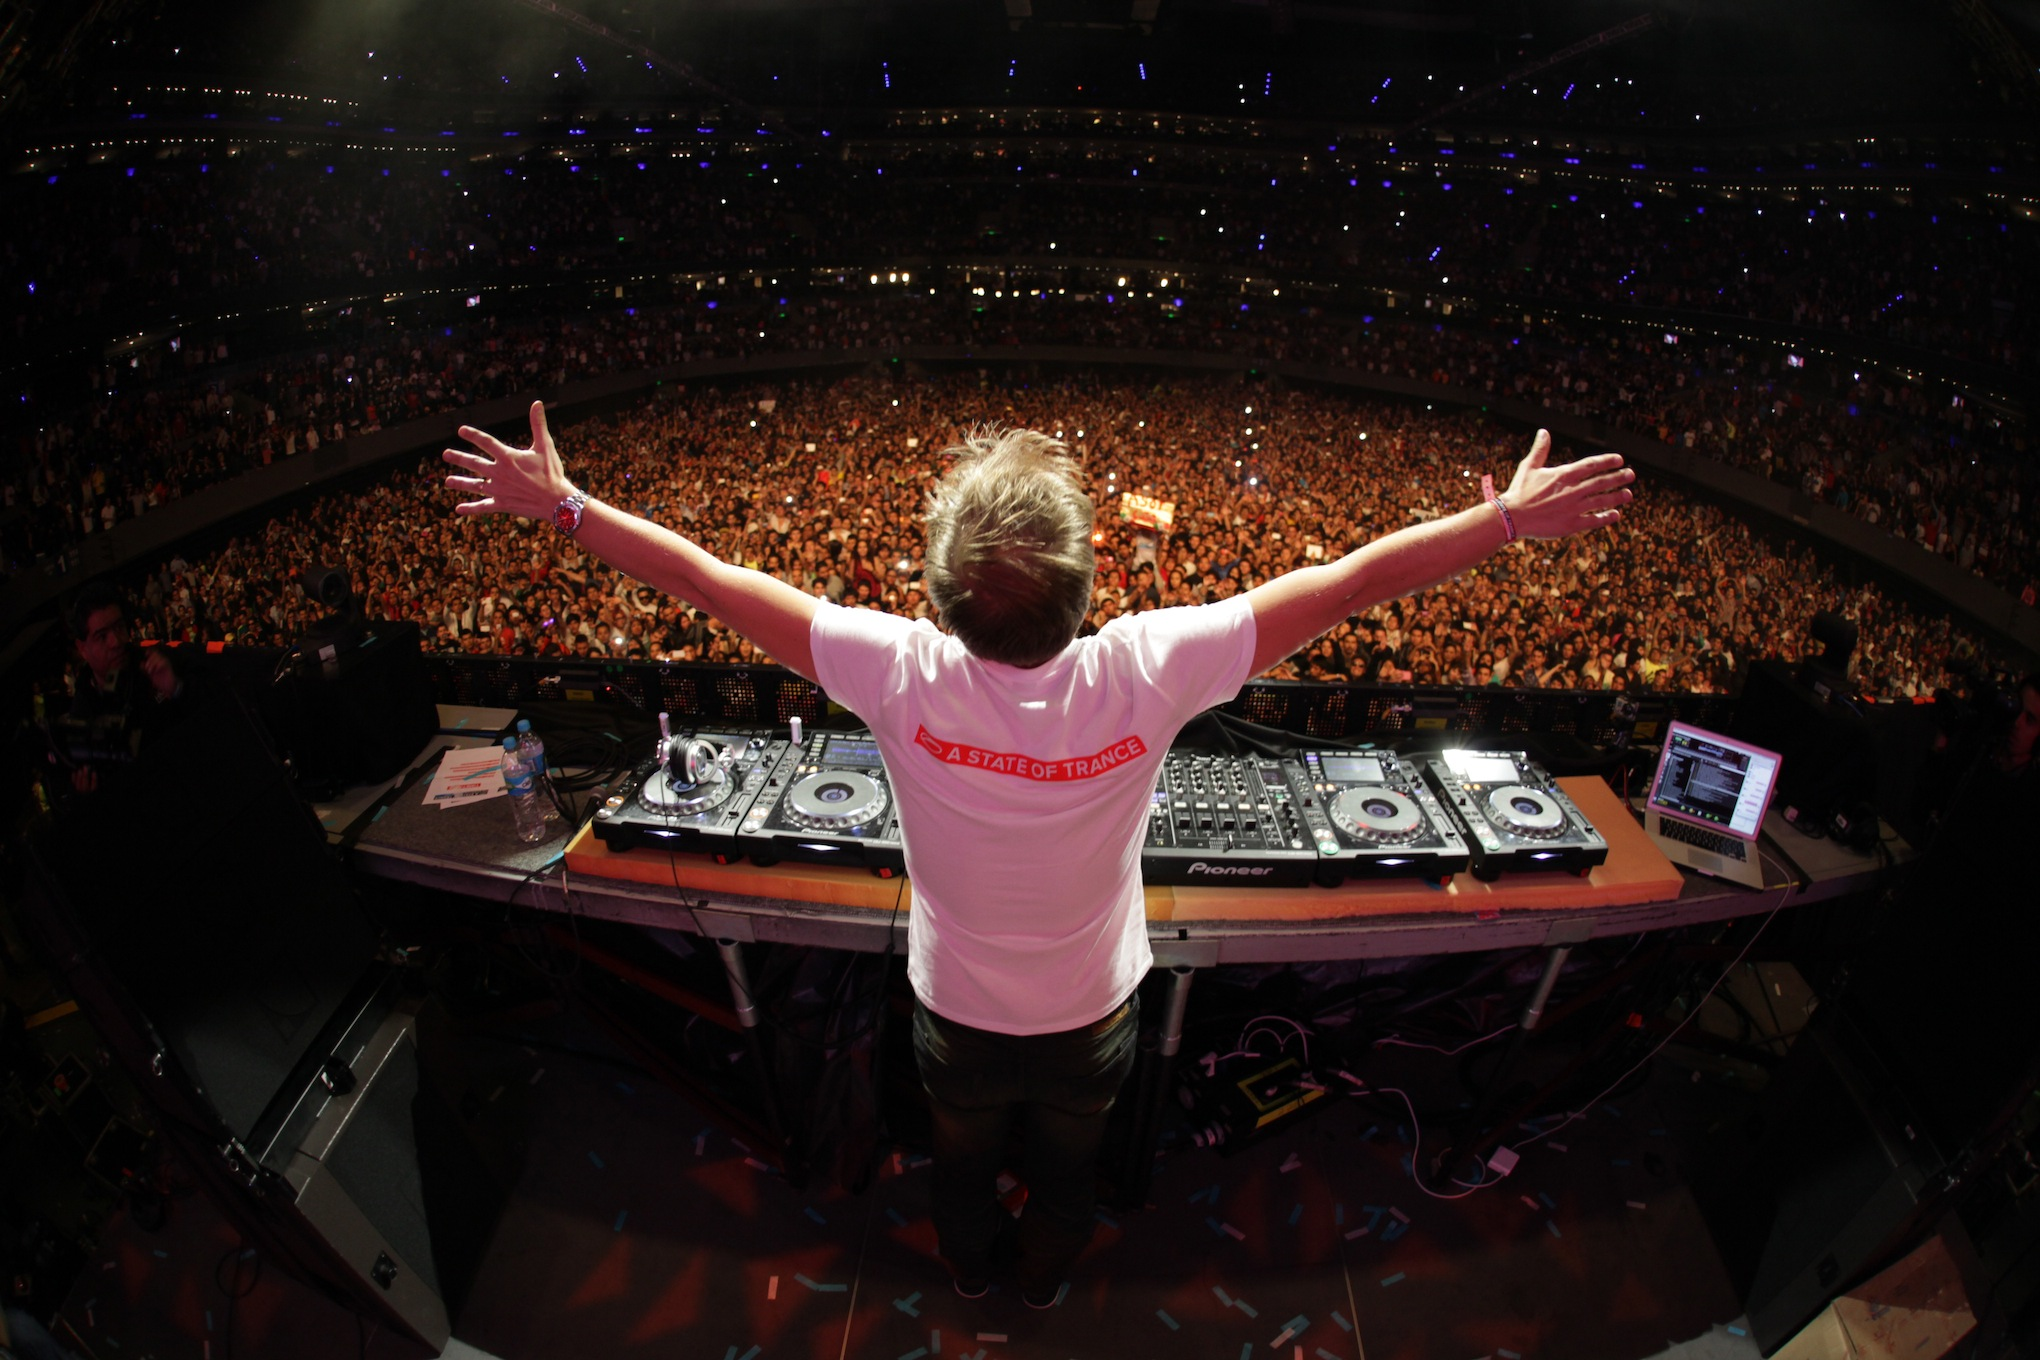 A State Of Trance 650 - New Horizons - Juno Download